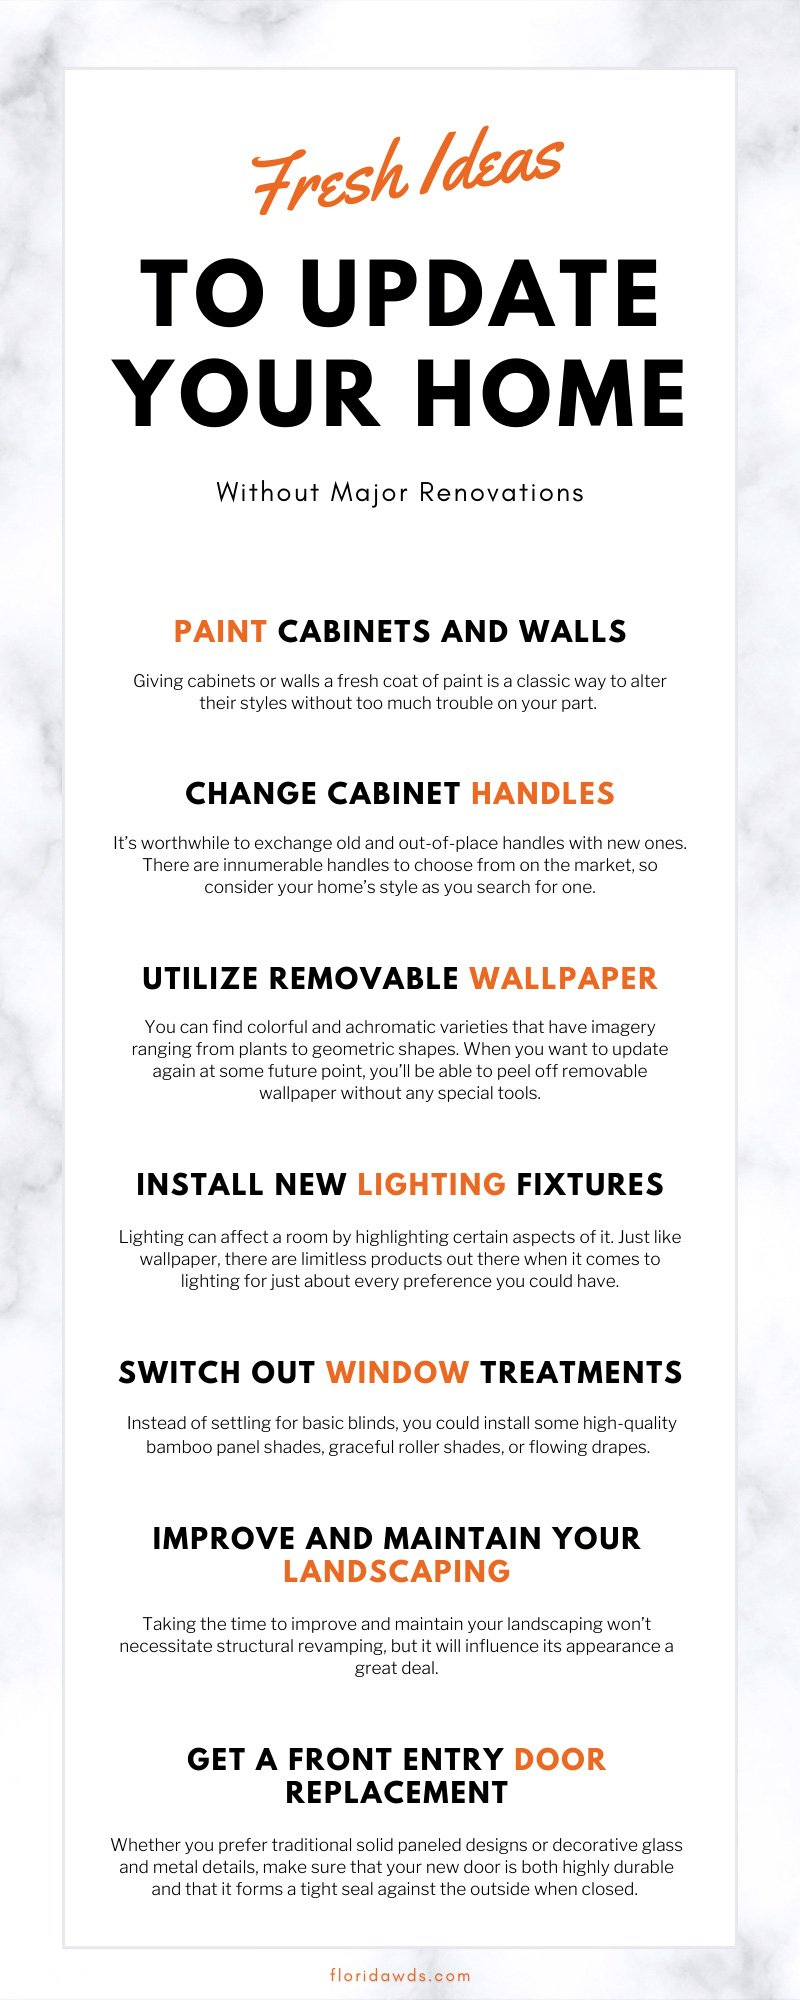 Fresh Ideas To Update Your Home Without Major Renovations